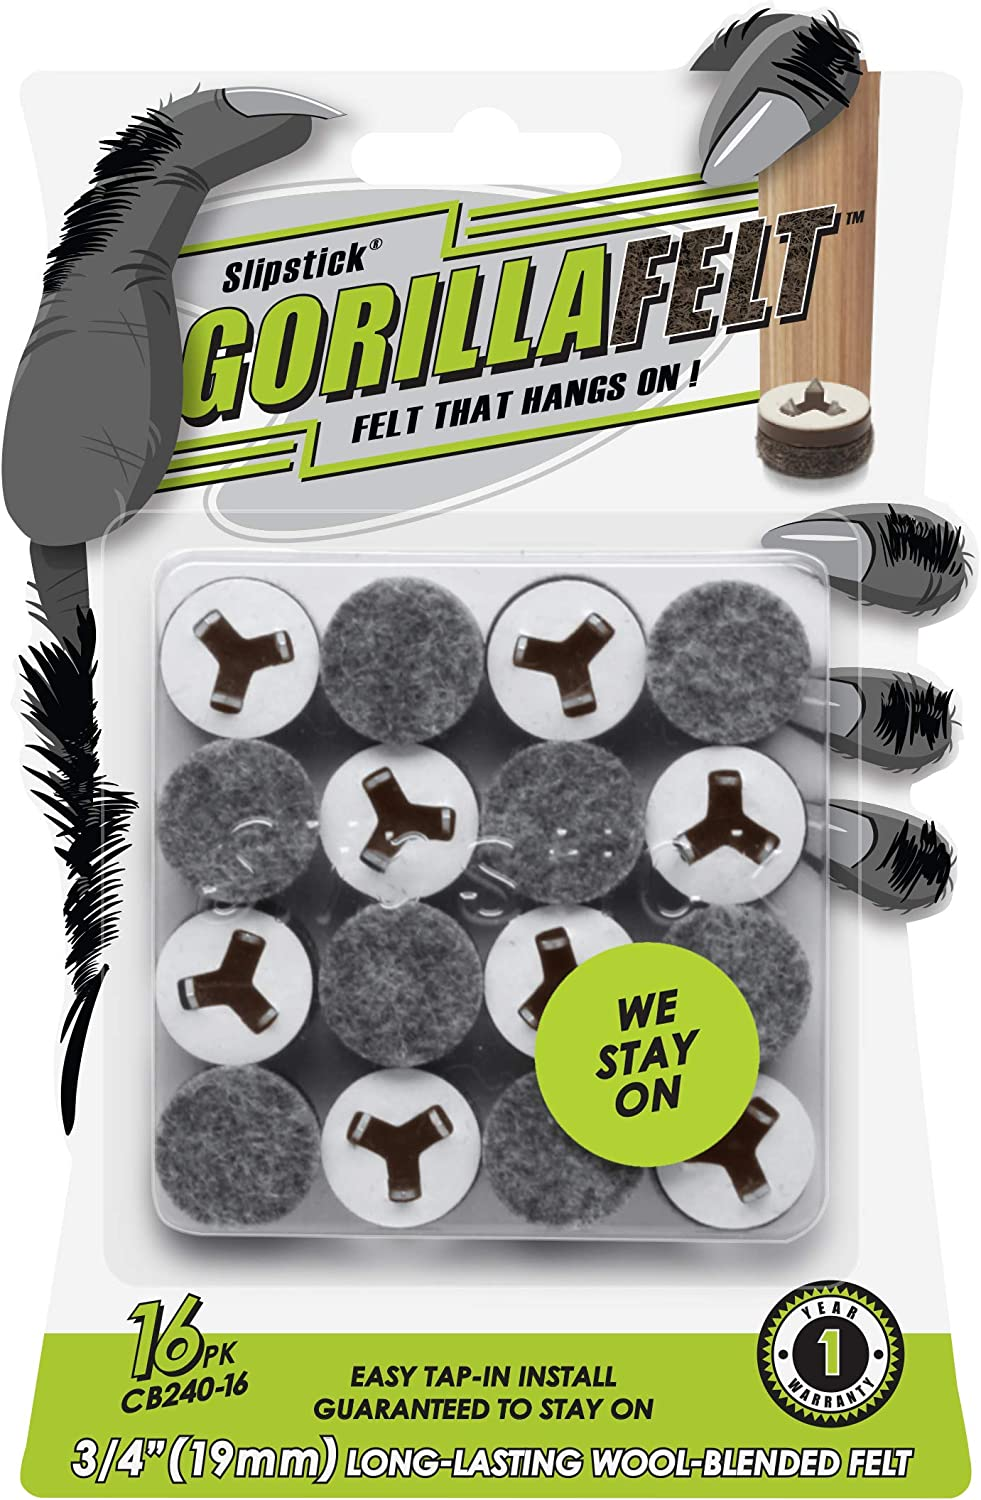 GorillaFelt ¾ Inch Chair Leg Floor Protectors/Felt Glides (Set of 16) Tap On Felt Furniture Pads Guaranteed to Stay On, Round Sliders, CB240-16